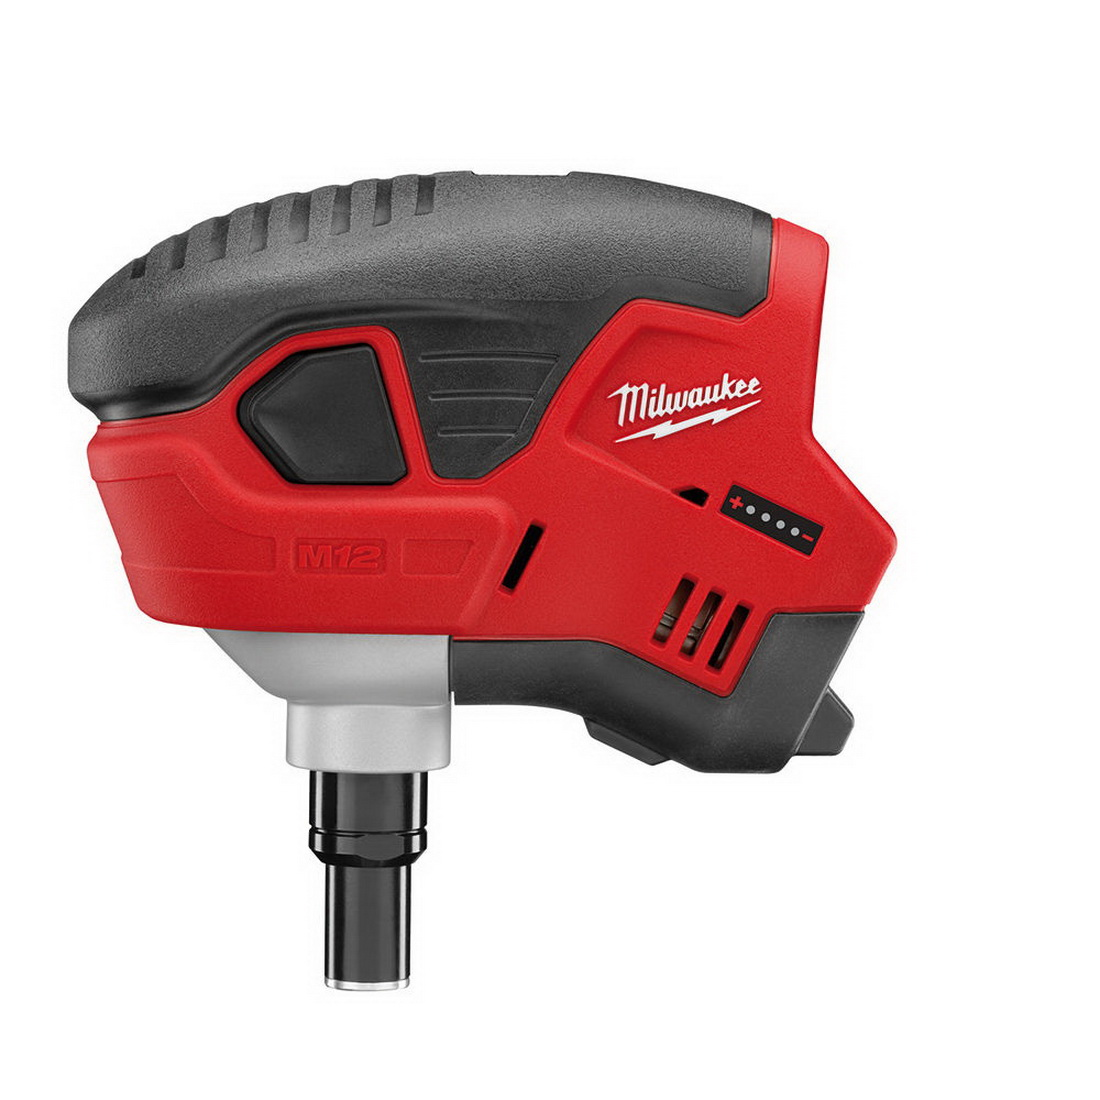 M12 Cordless Palm Nailer (Tool Only)